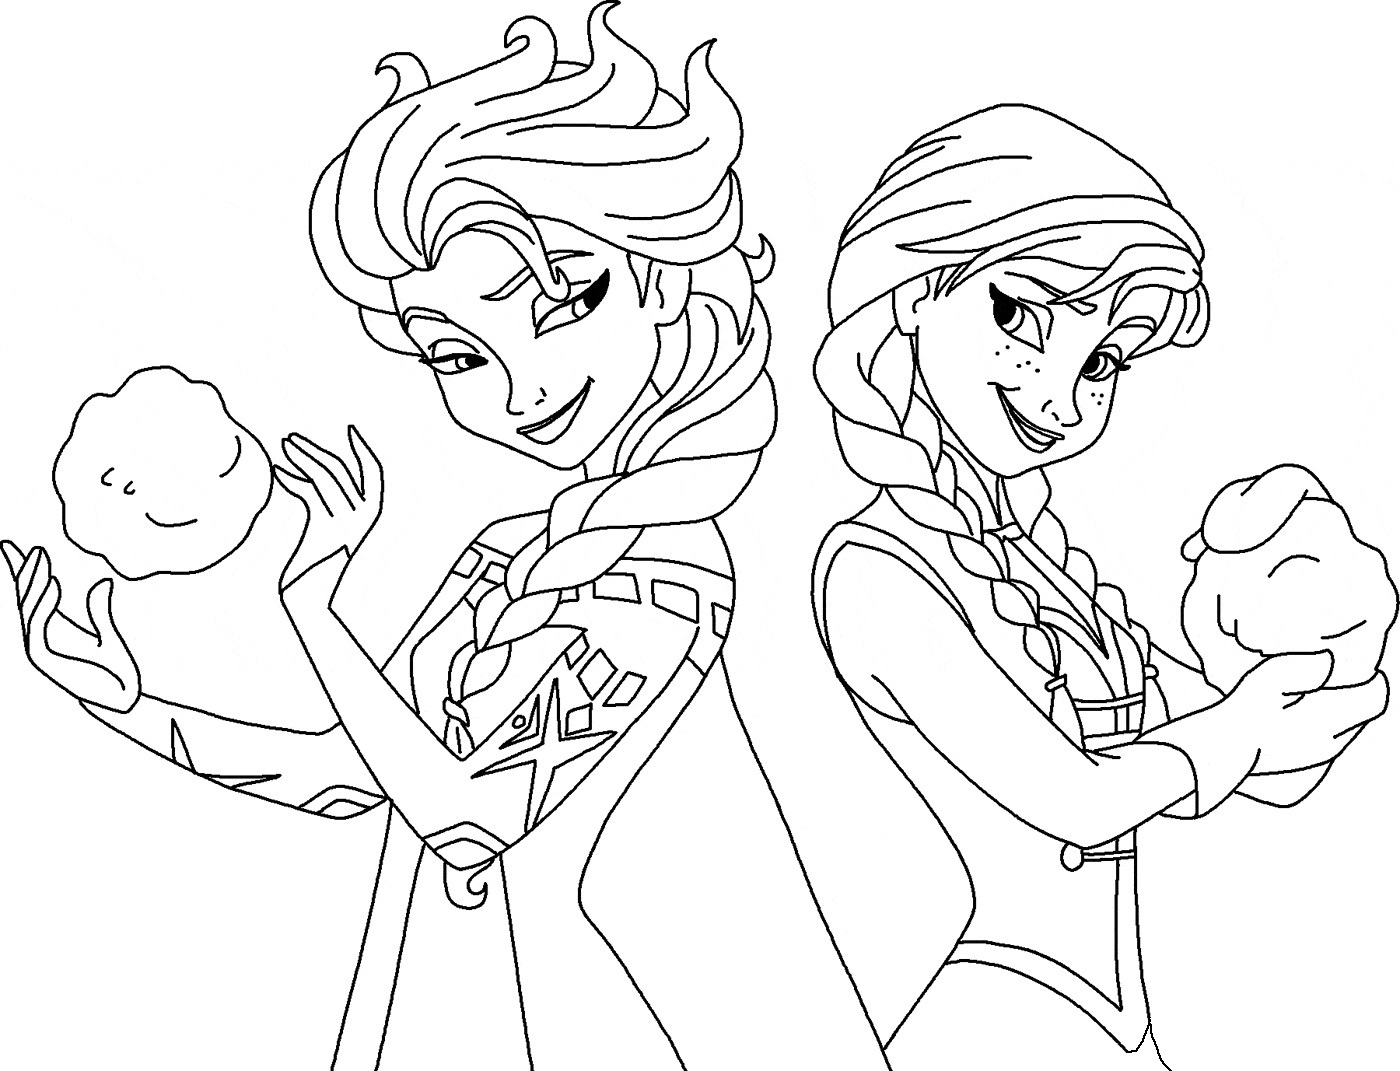 elsa and anna frozen coloring pages frozen elsa and anna coloring page free coloring pages and elsa coloring frozen anna pages